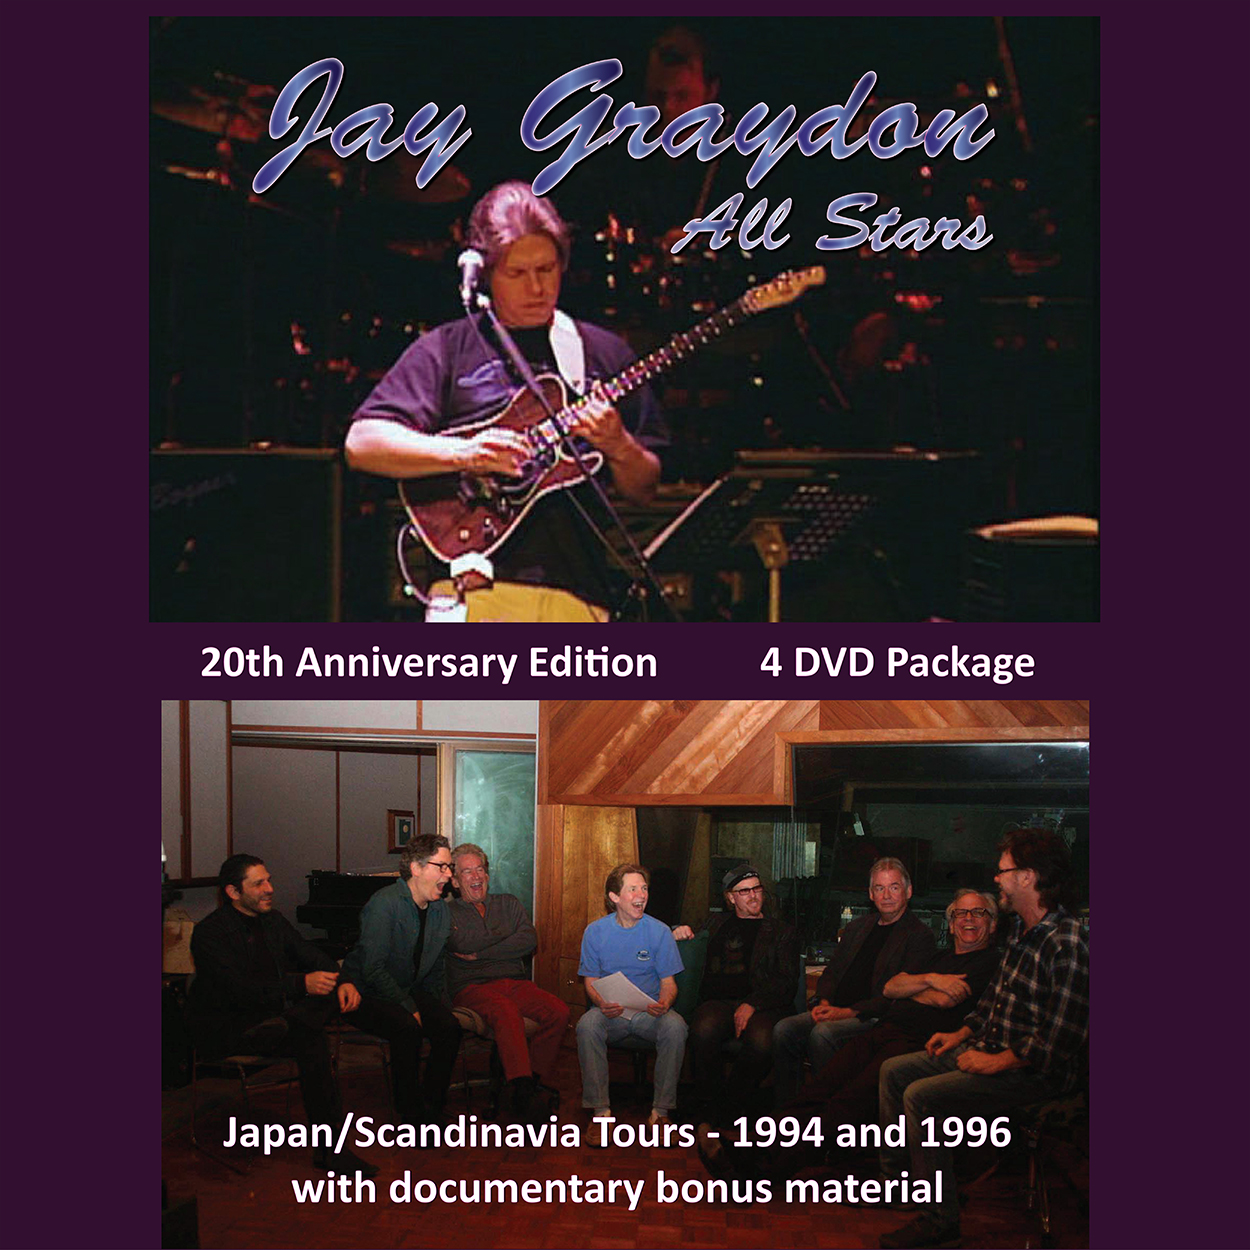 Jay Graydon Official Web Site News Archive